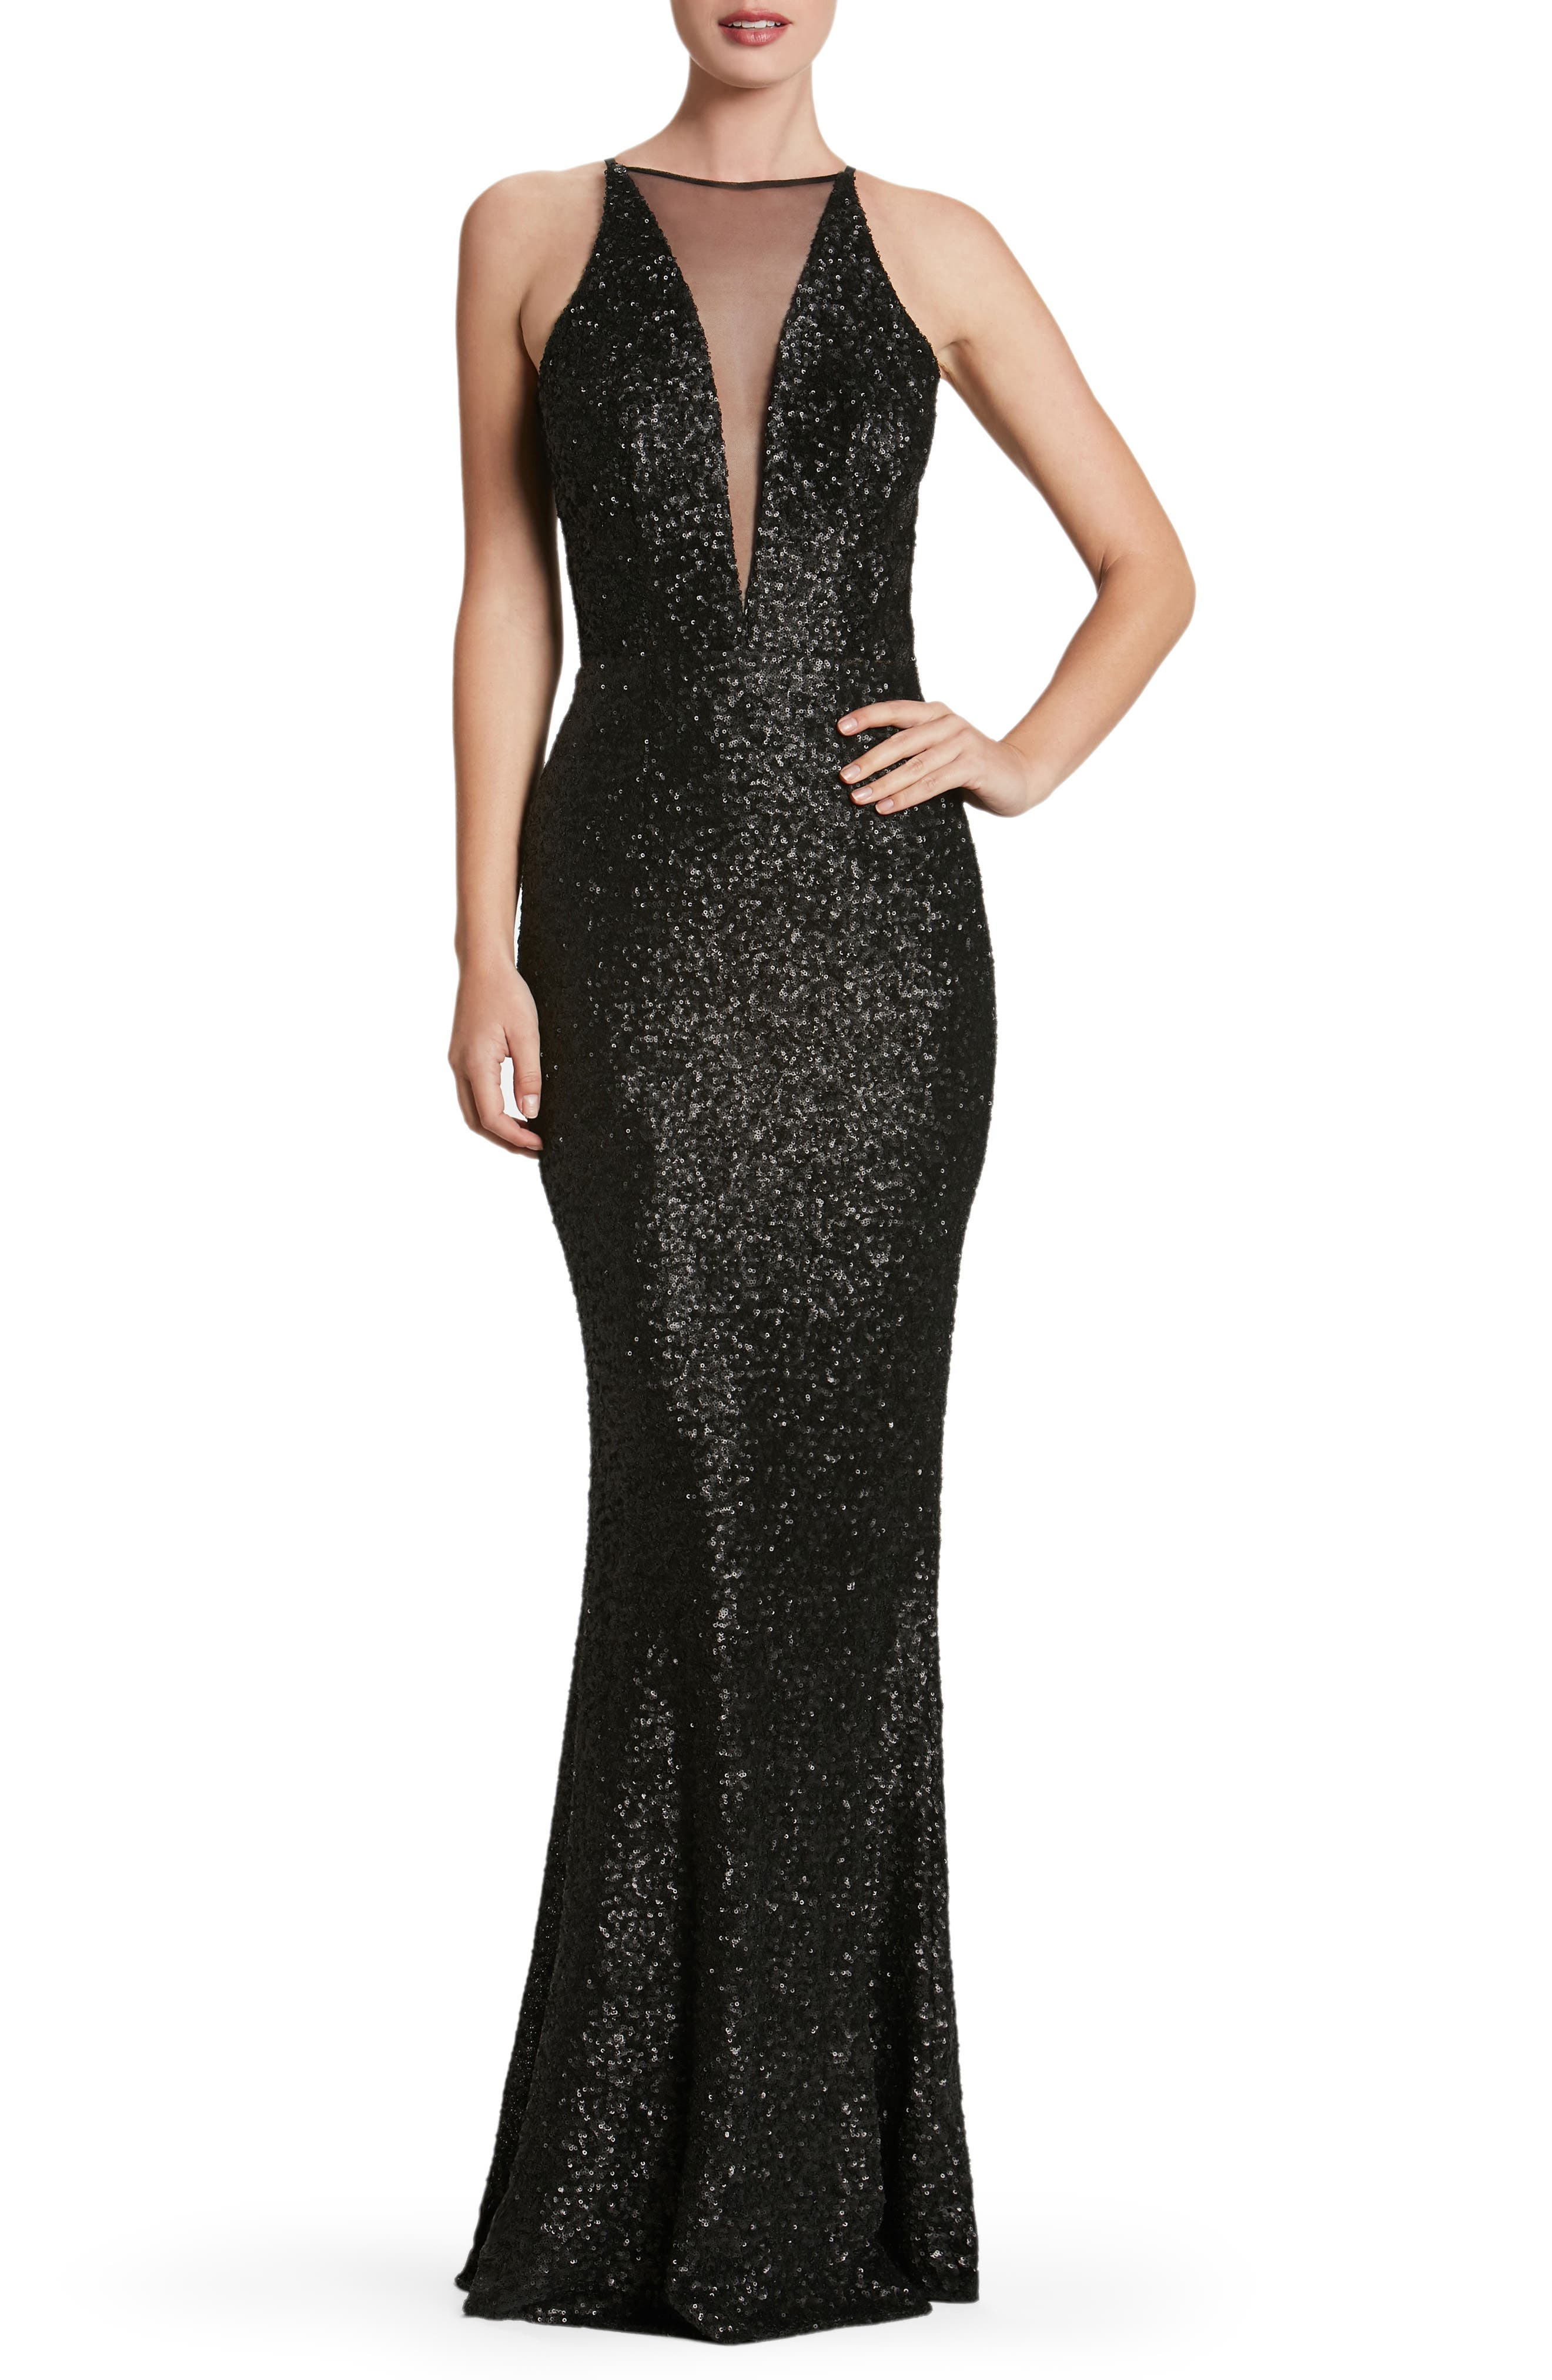 Brenda Plunging Illusion Sequin Mermaid Gown,                             Main thumbnail 1, color,